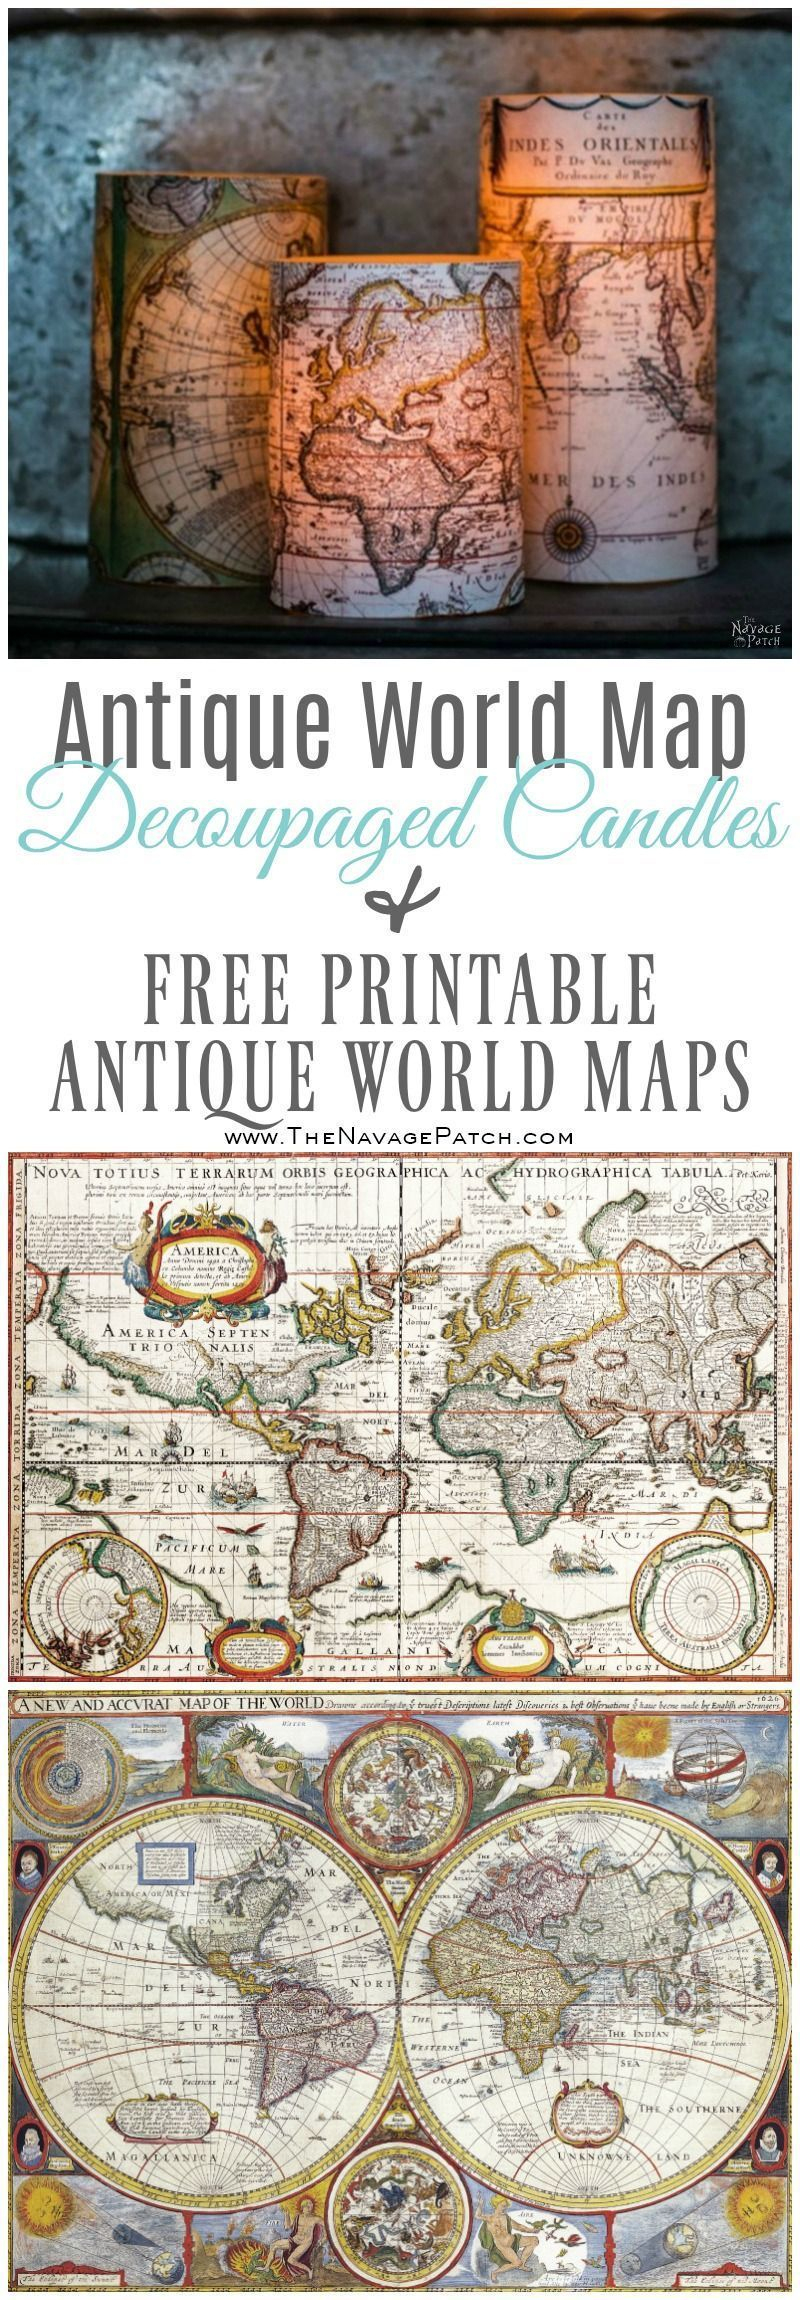 Antique World Map Decoupaged Candles | How To Decoupage | Free - Free Printable Decoupage Images